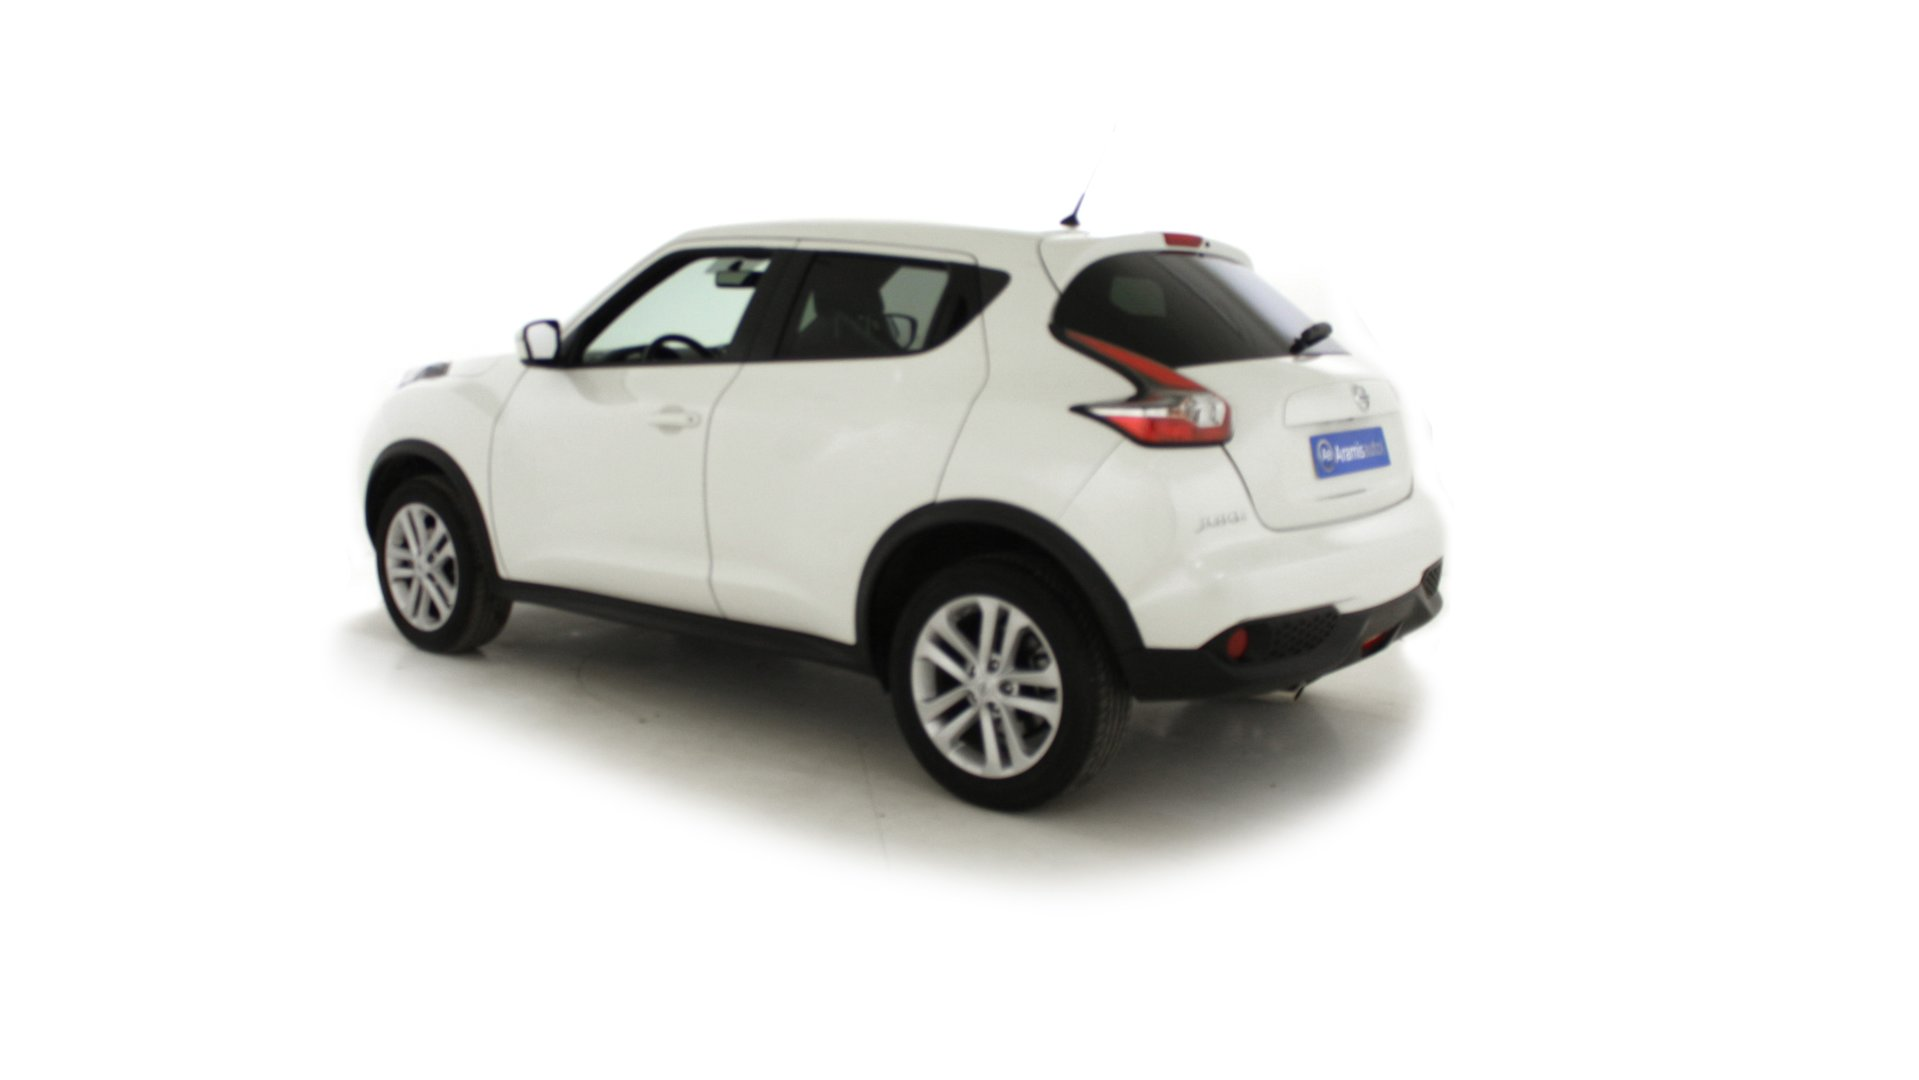 nissan juke nouveau 4x2 et suv 5 portes essence 117 xtronic a bo te automatique. Black Bedroom Furniture Sets. Home Design Ideas